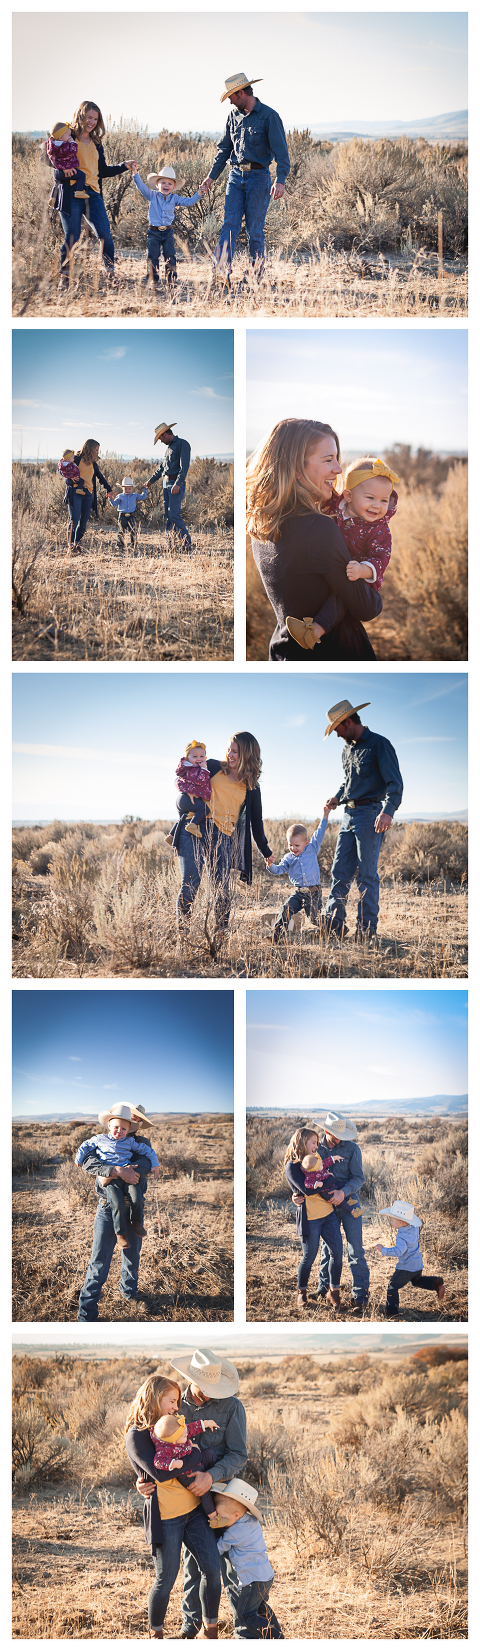 Stolens Lifestyle Family Photography by Hailey Haberman 2018 in Ellensburg WA